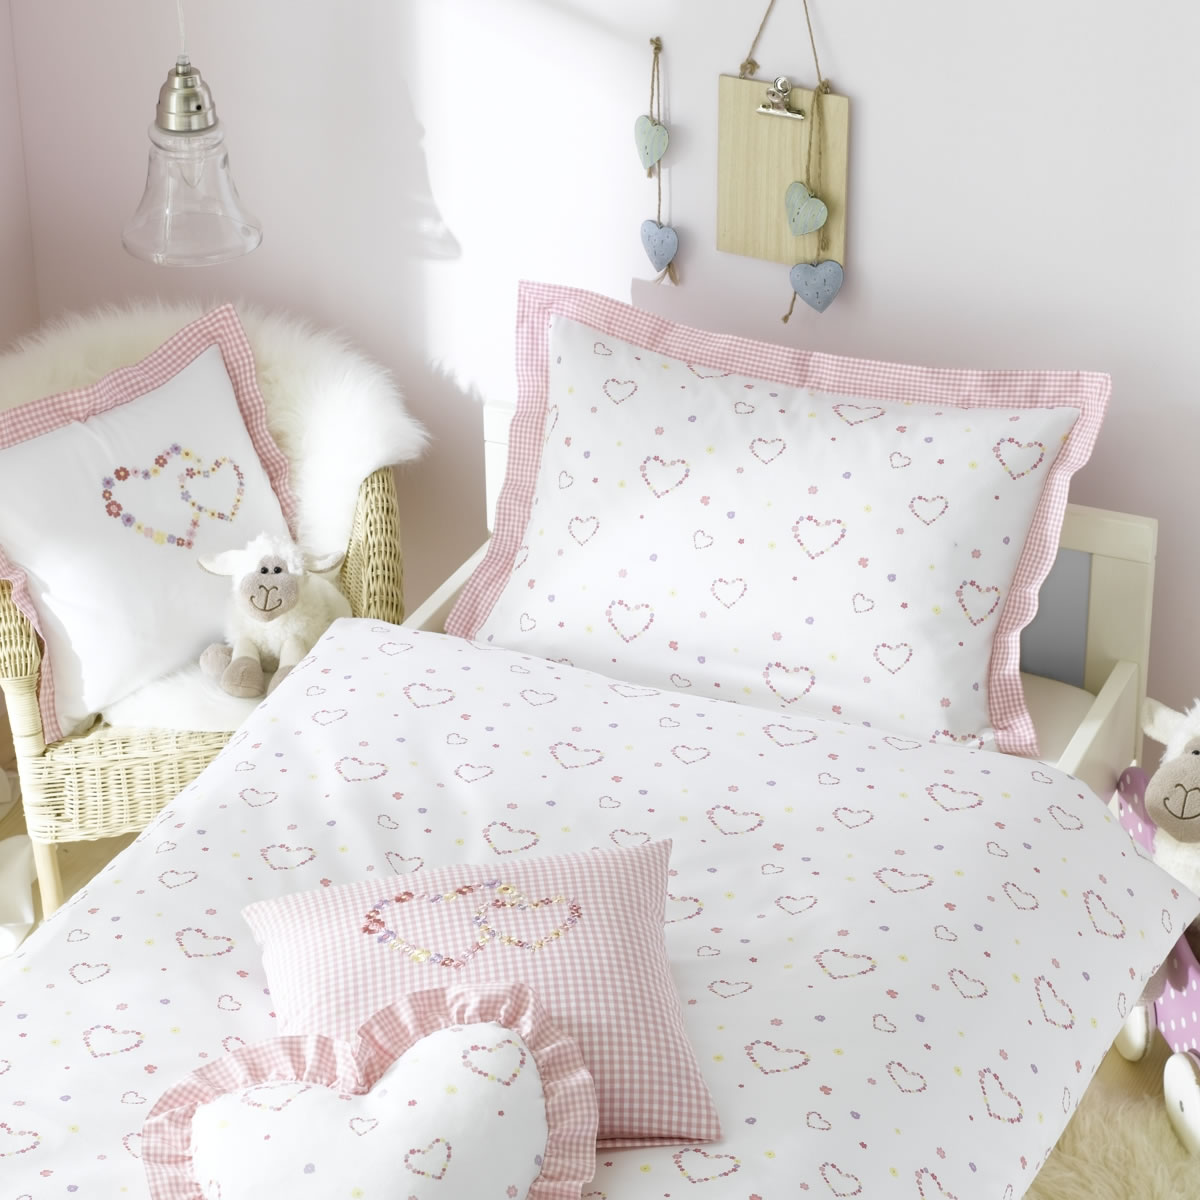 lorena maco satin kinder bettw sche lilly einzelkissen mit stickerei rosa wei ebay. Black Bedroom Furniture Sets. Home Design Ideas